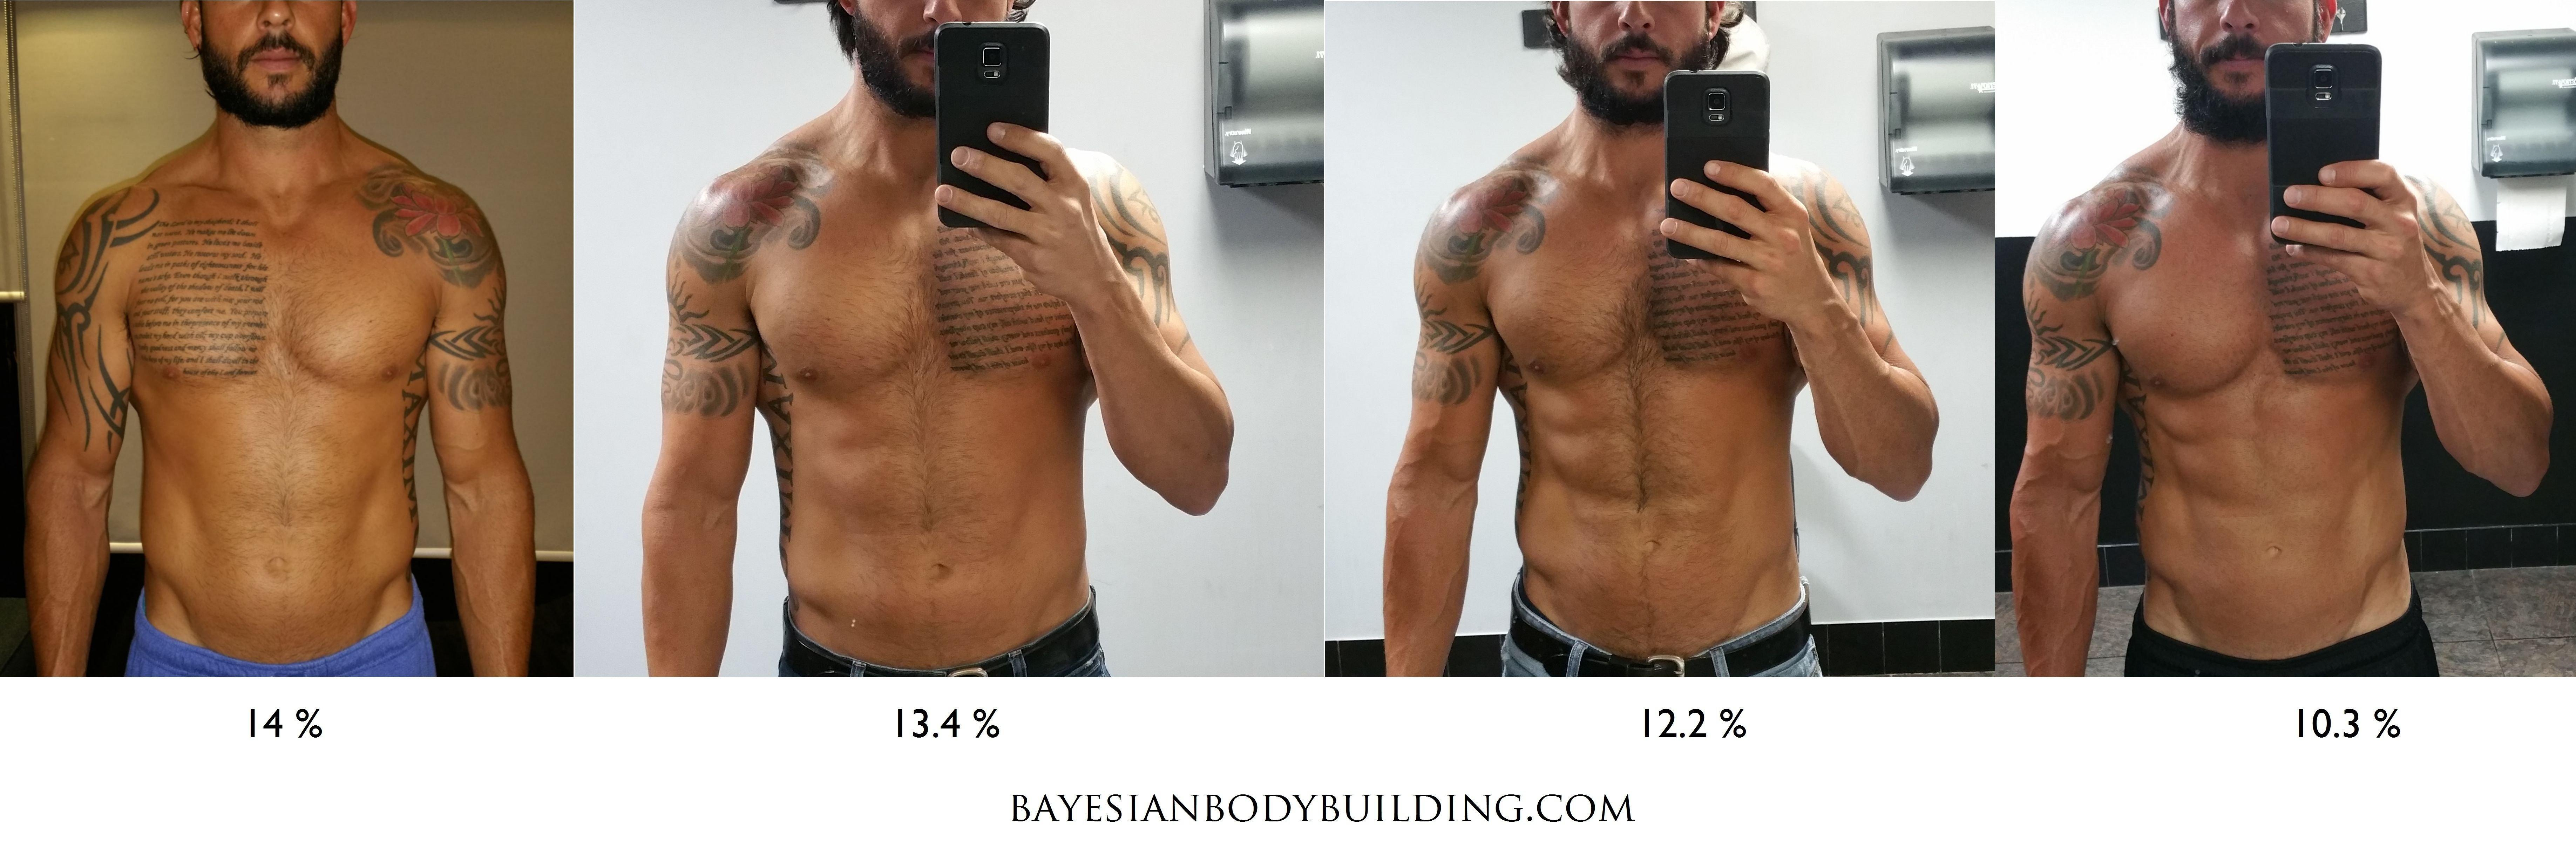 Can You Gain Muscle And Lose Fat At The Same Time?